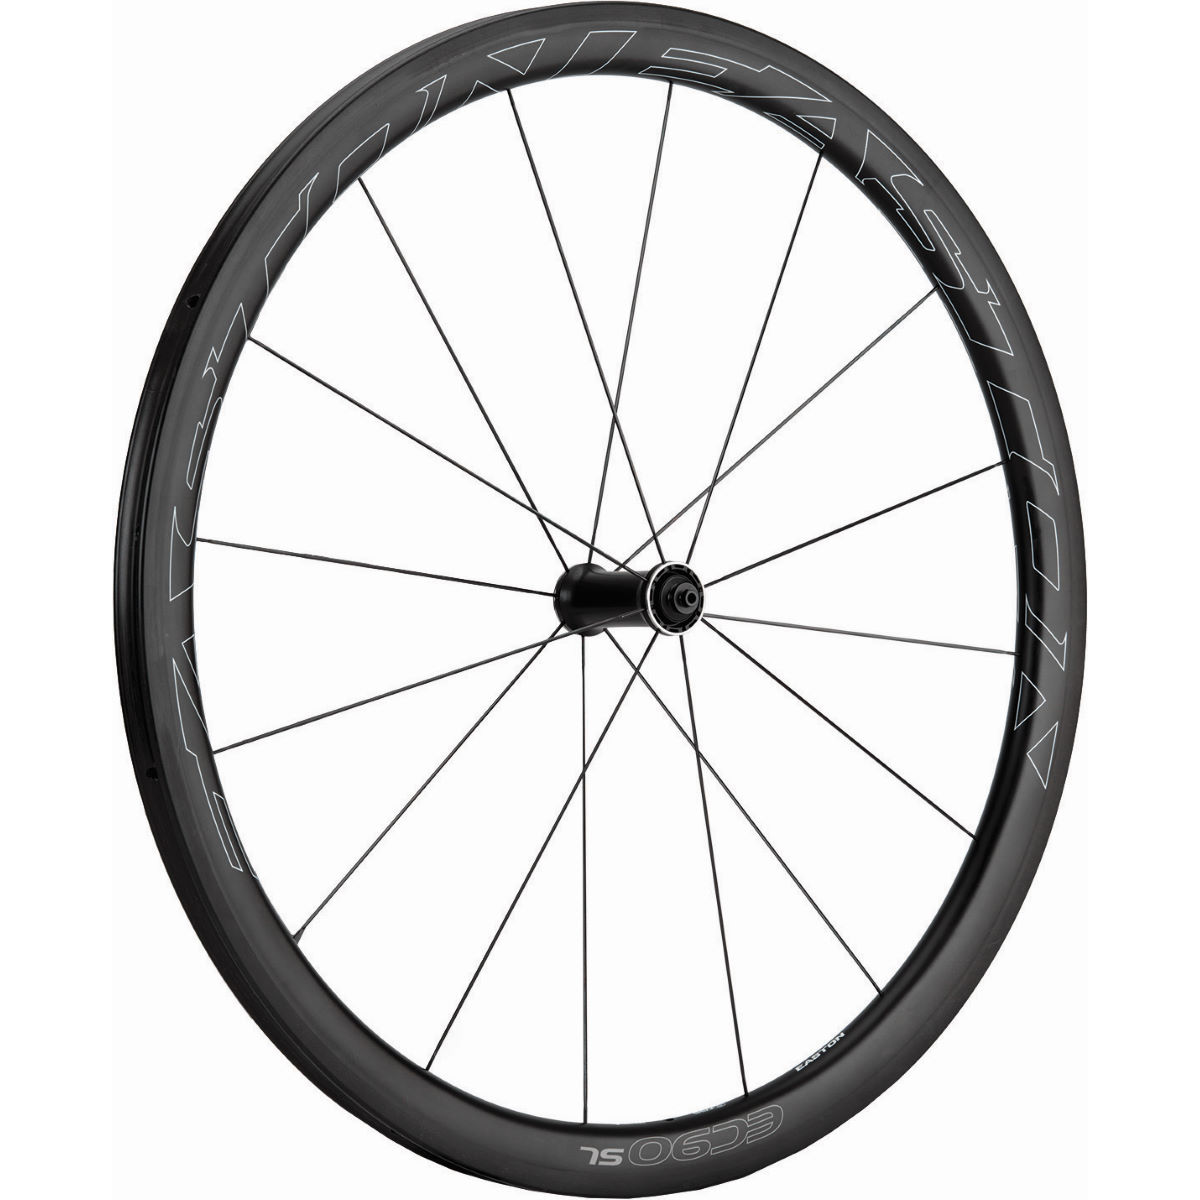 Roue avant Easton EC90 SL Carbon Tubeless - 700c Noir